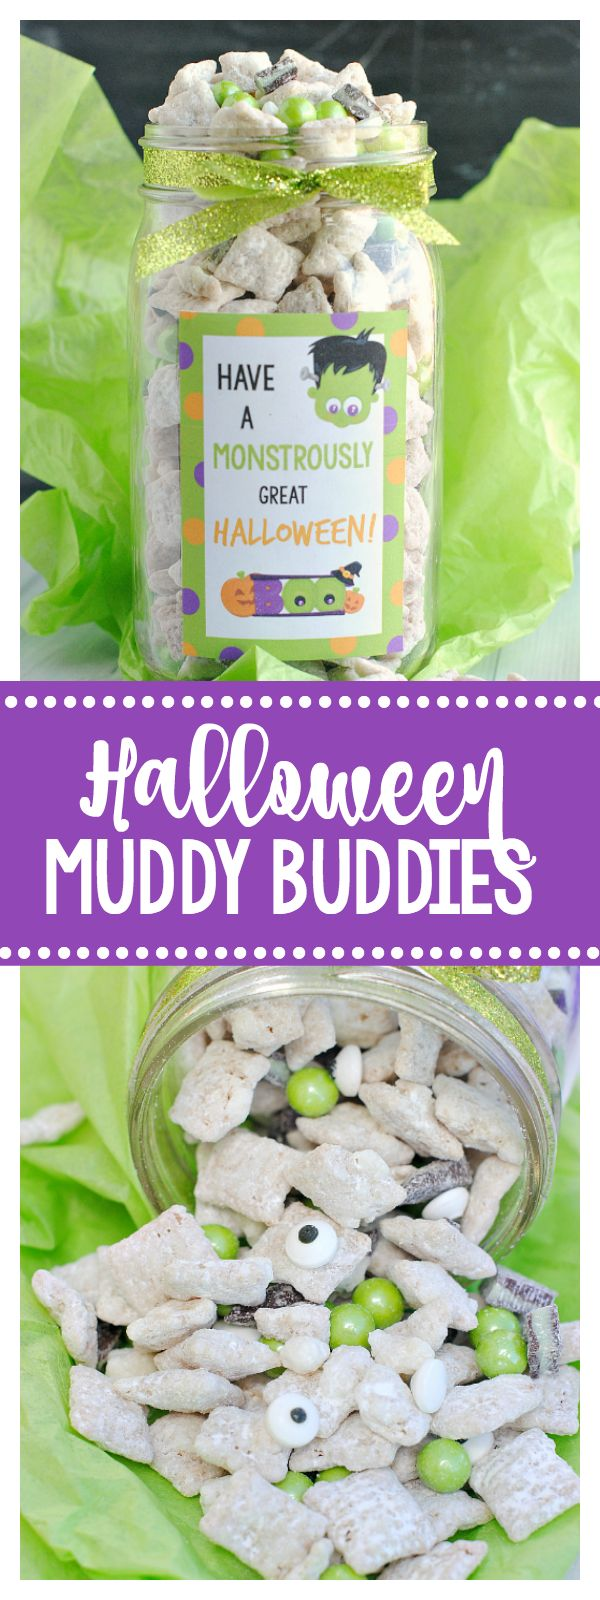 Cute Halloween Gift-Muddy Buddies and Fun Tag